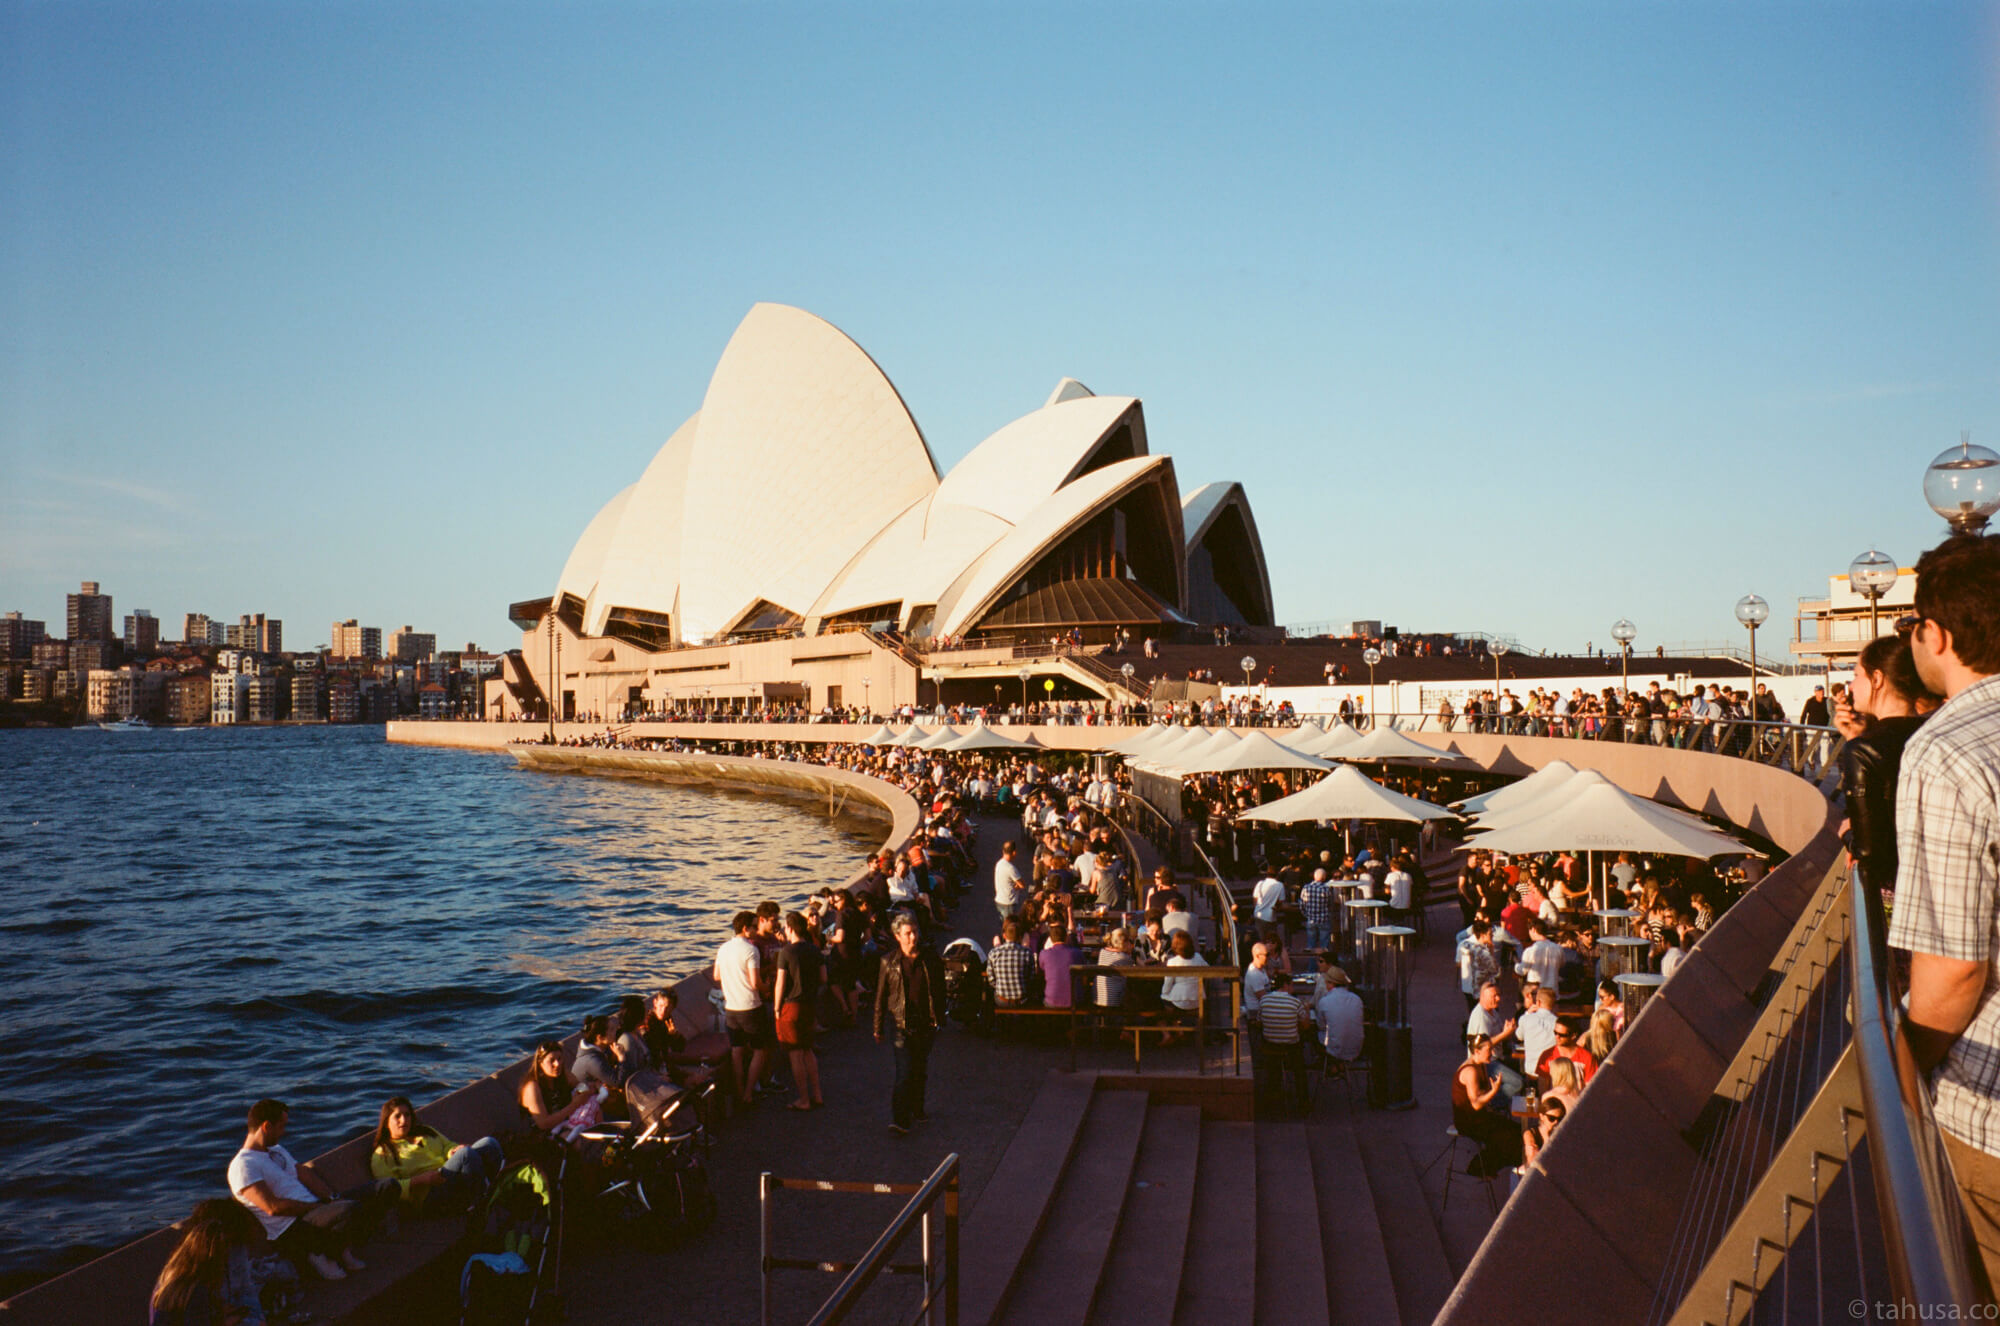 visiting-sydney-opera-house-in-Australia-using-Fuji-fujifilm-Klasse-W-28mm-f2.8-snapshot-point-and-shoot-Klasse-Kodak-Ektar-100-iso-low-speed-film-photography-shooter-Leica-lens-travel